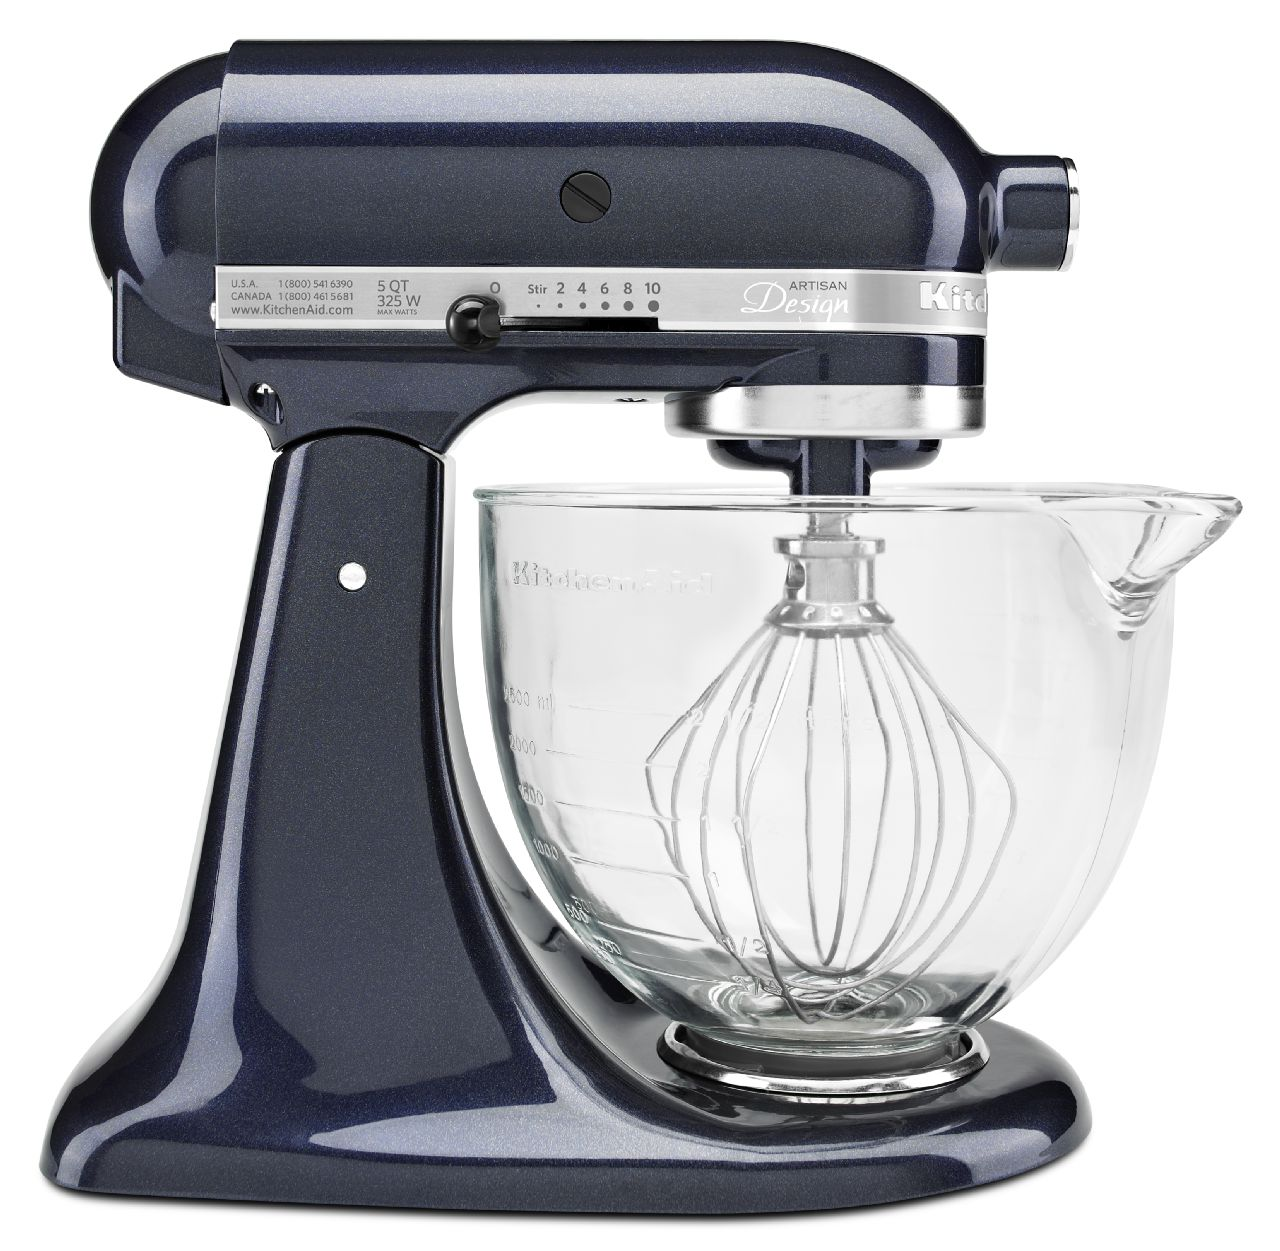 Kitchenaid 174 Artisan 174 Design 5qt Tilt Head Stand Mixer